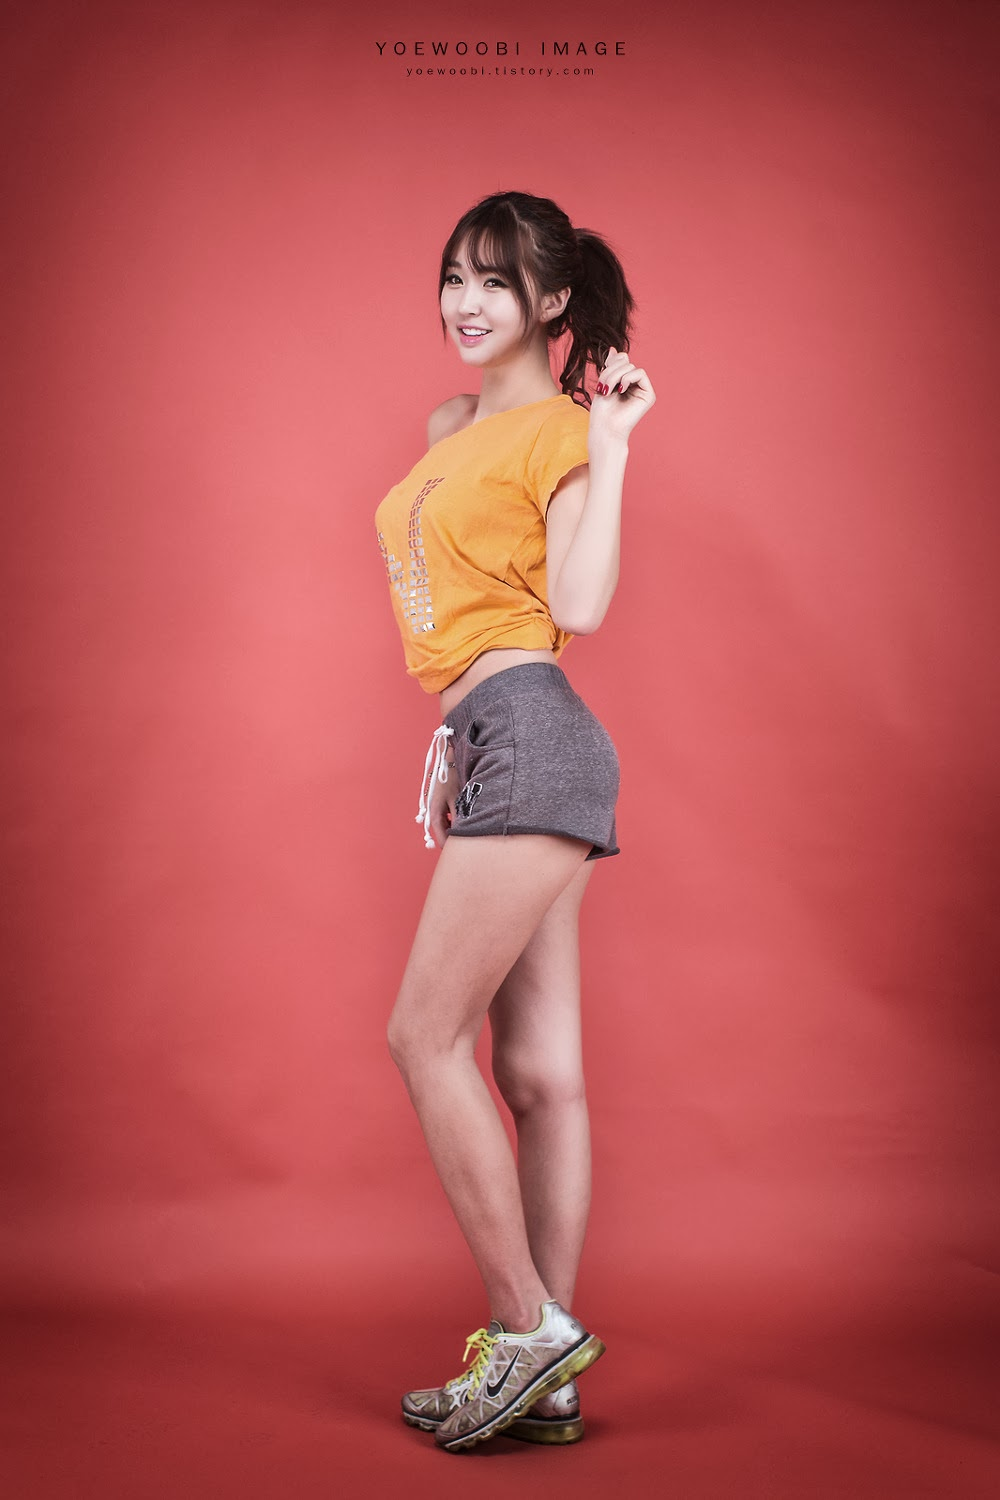 2 Choi Byeol Ha - very cute asian girl-girlcute4u.blogspot.com